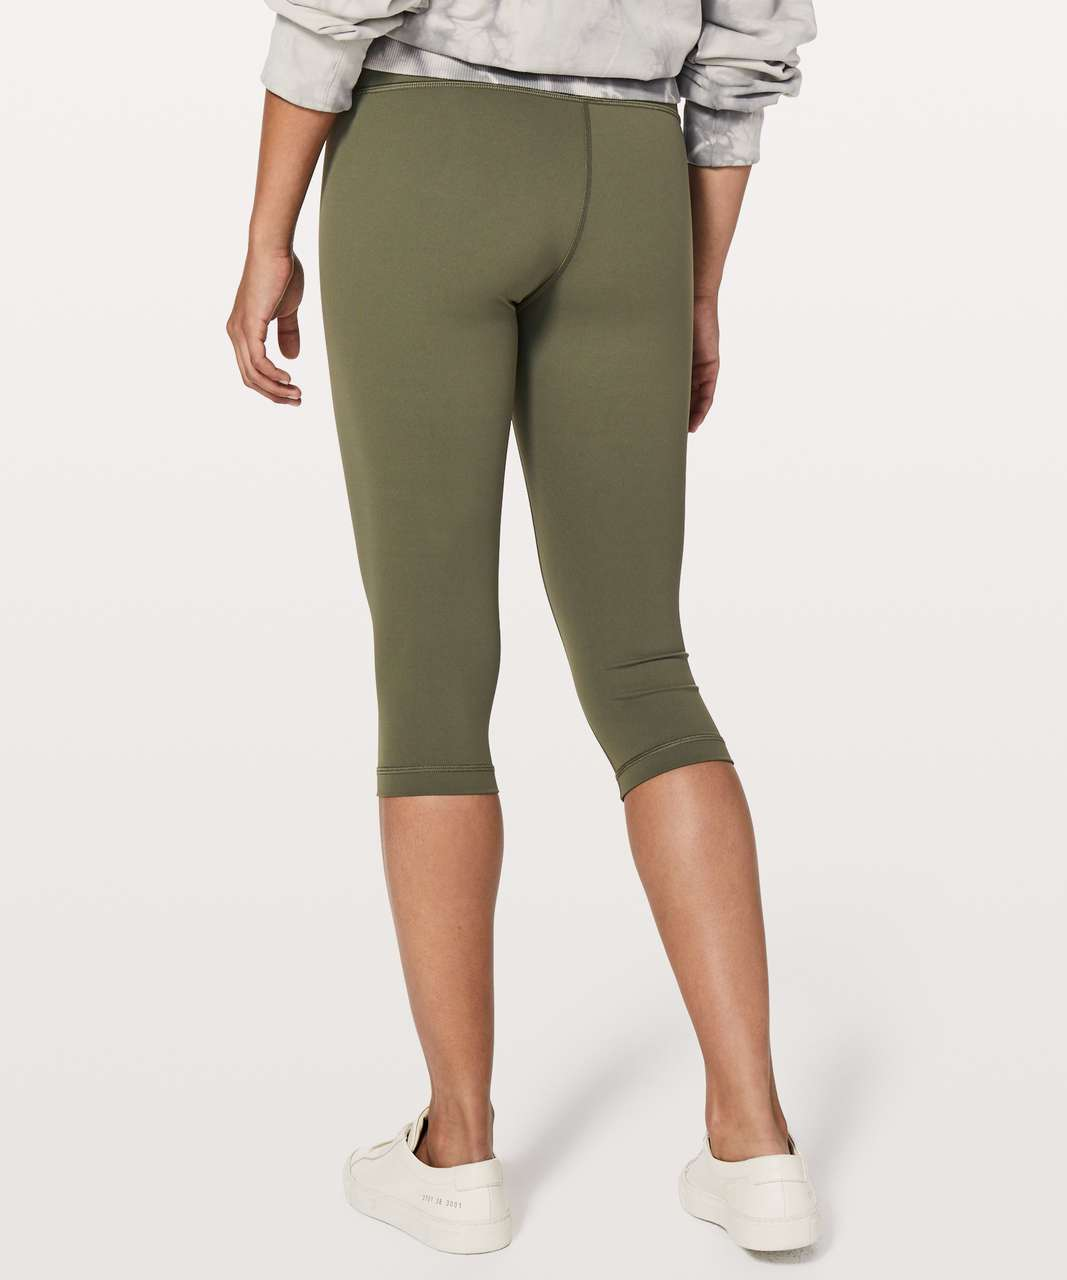 "Lululemon Wunder Under Hi-Rise 1/2 Tight *17"" - Sage"